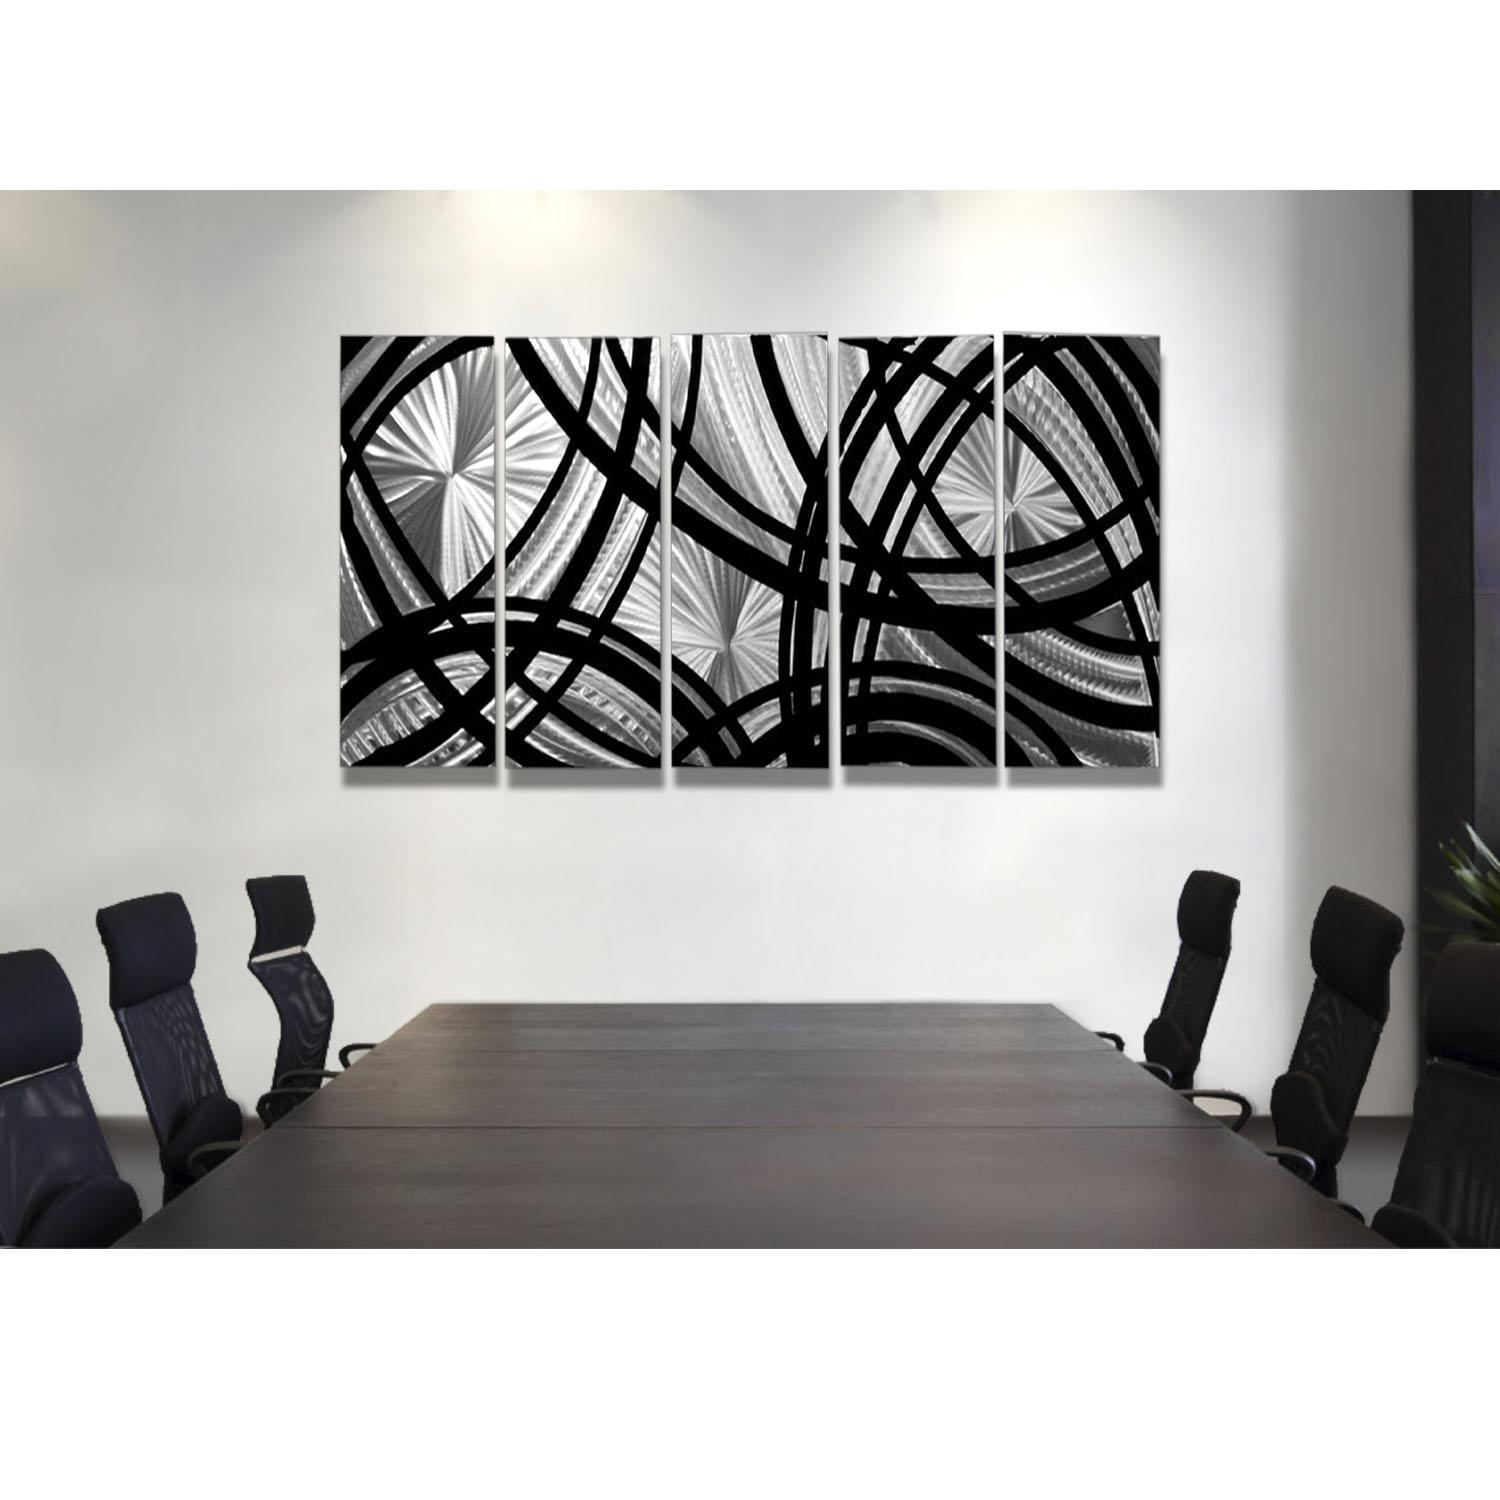 Frequency One – Black And Silver Metal Wall Art – 5 Panel Wall For Black Silver Wall Art (View 5 of 20)